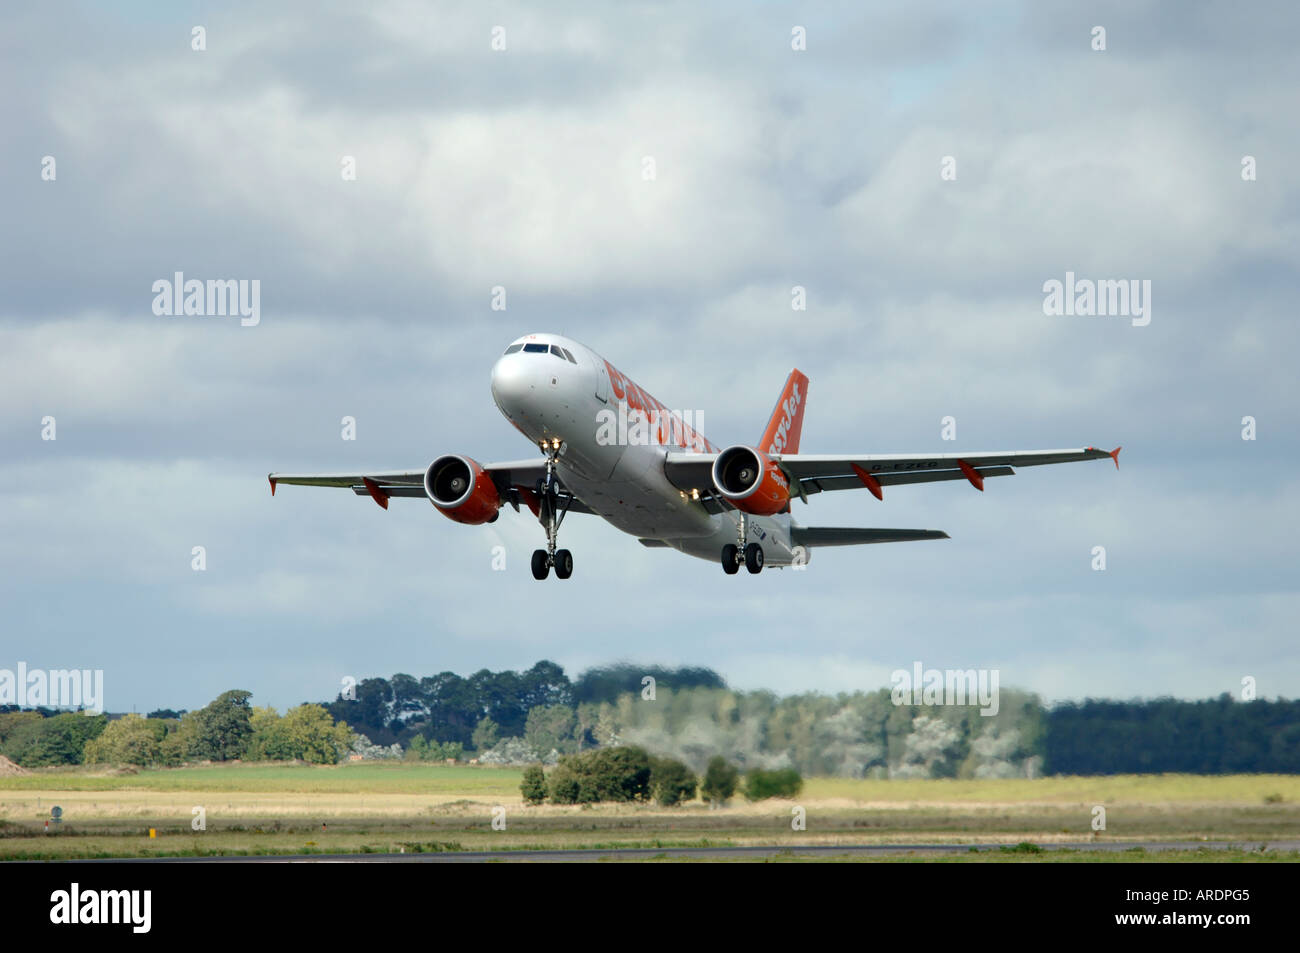 Easy Jet 737-700 Departing Inverness Dalcross Airport.  XAV 3664-354 - Stock Image